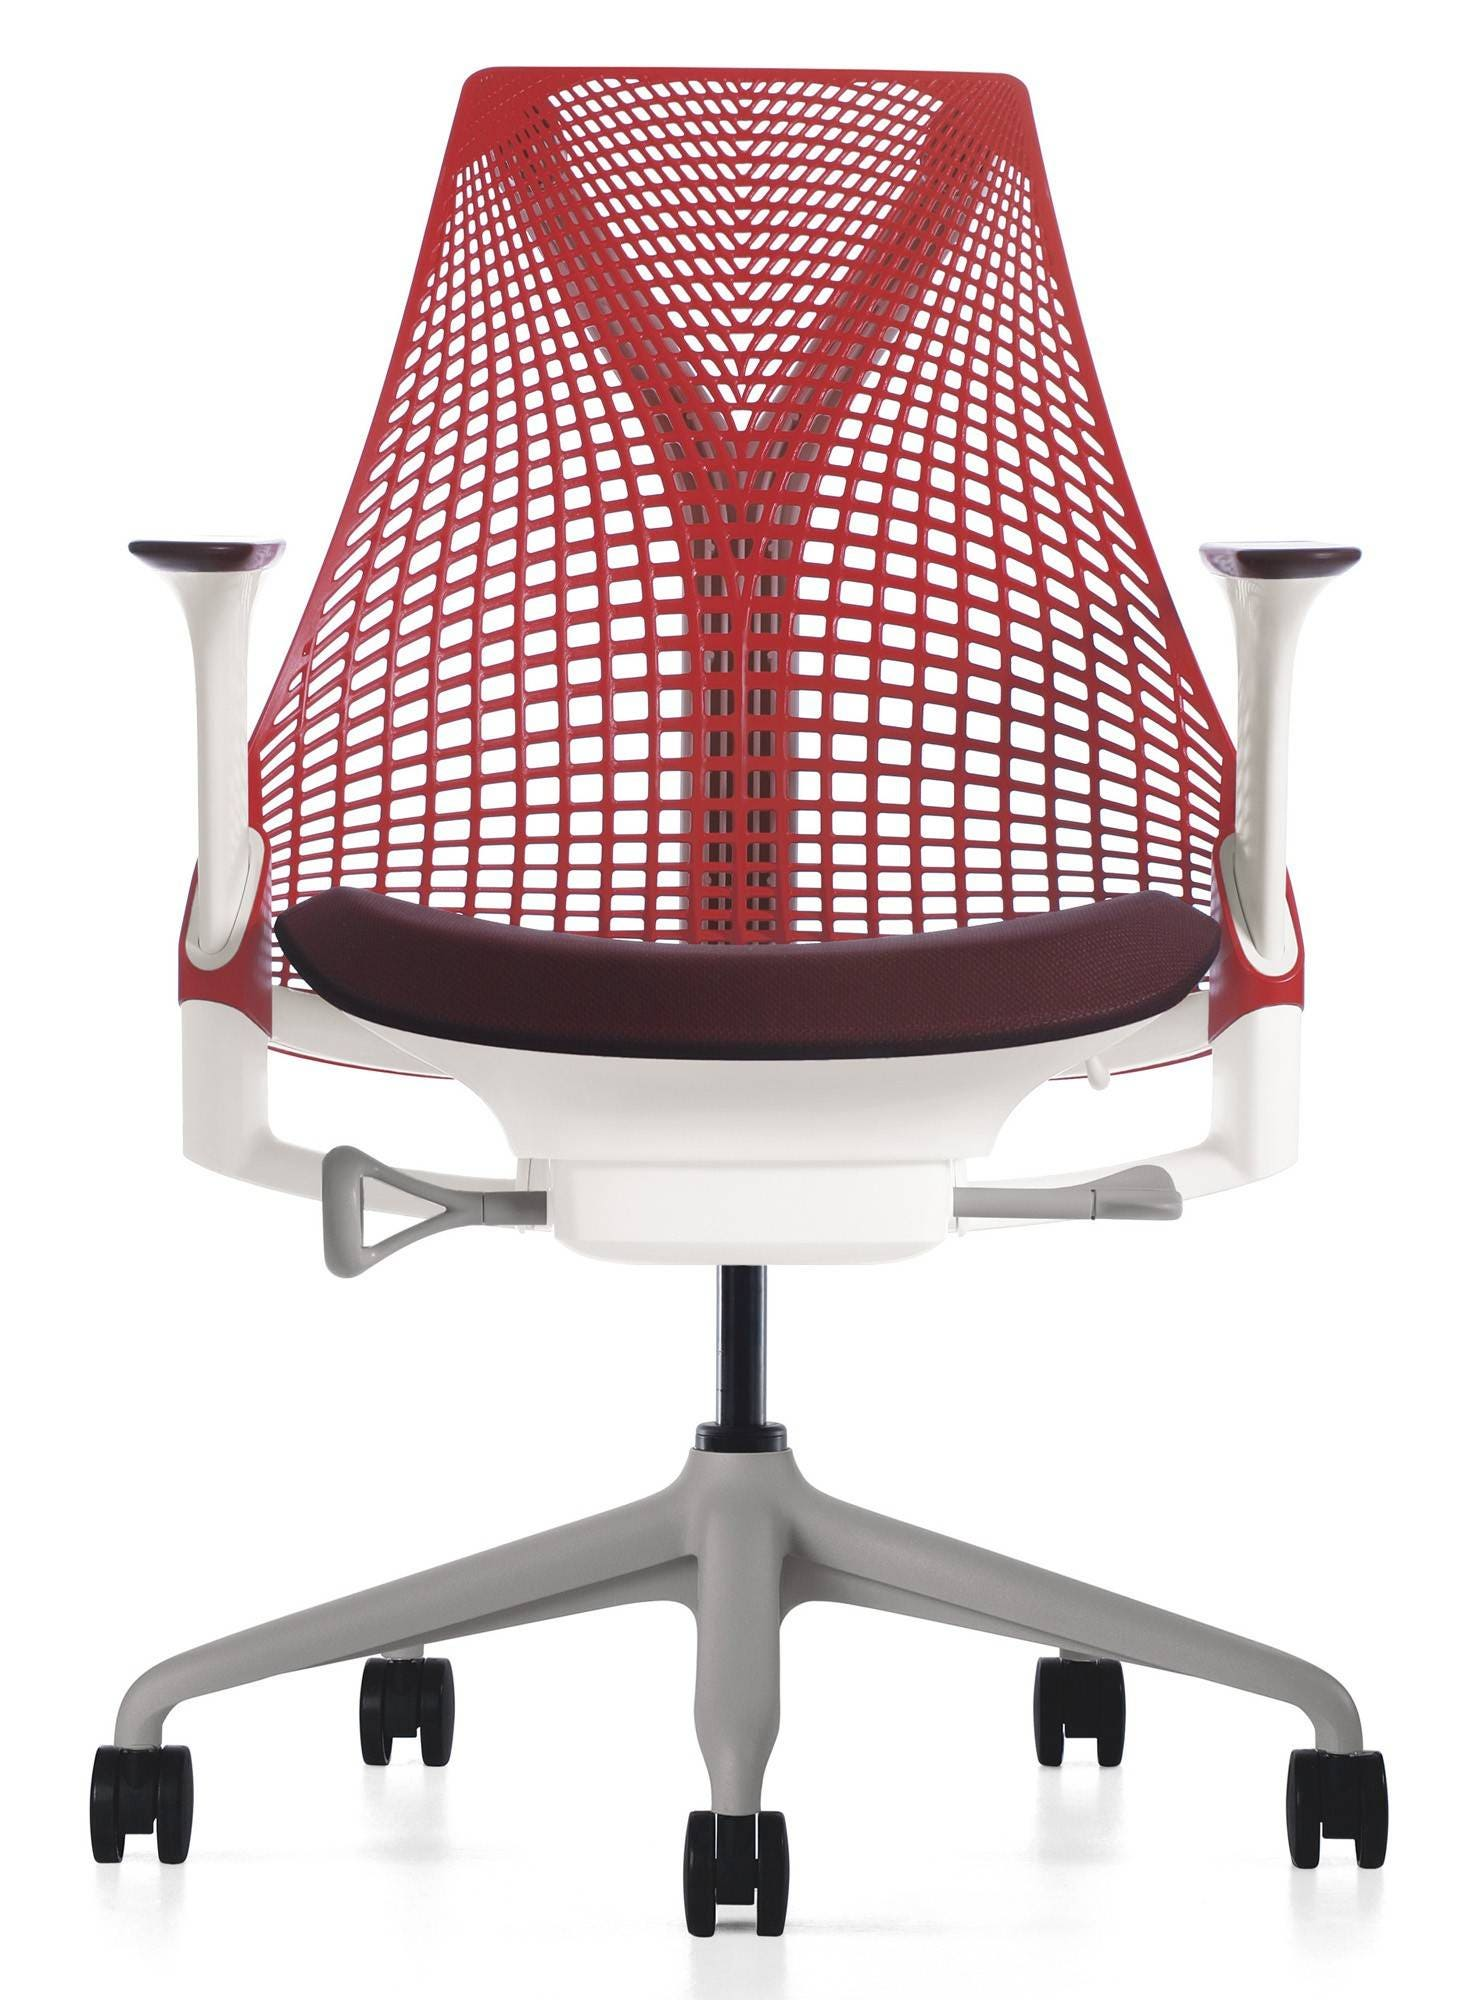 Herman Miller Sayl® Chair - Build Your Own